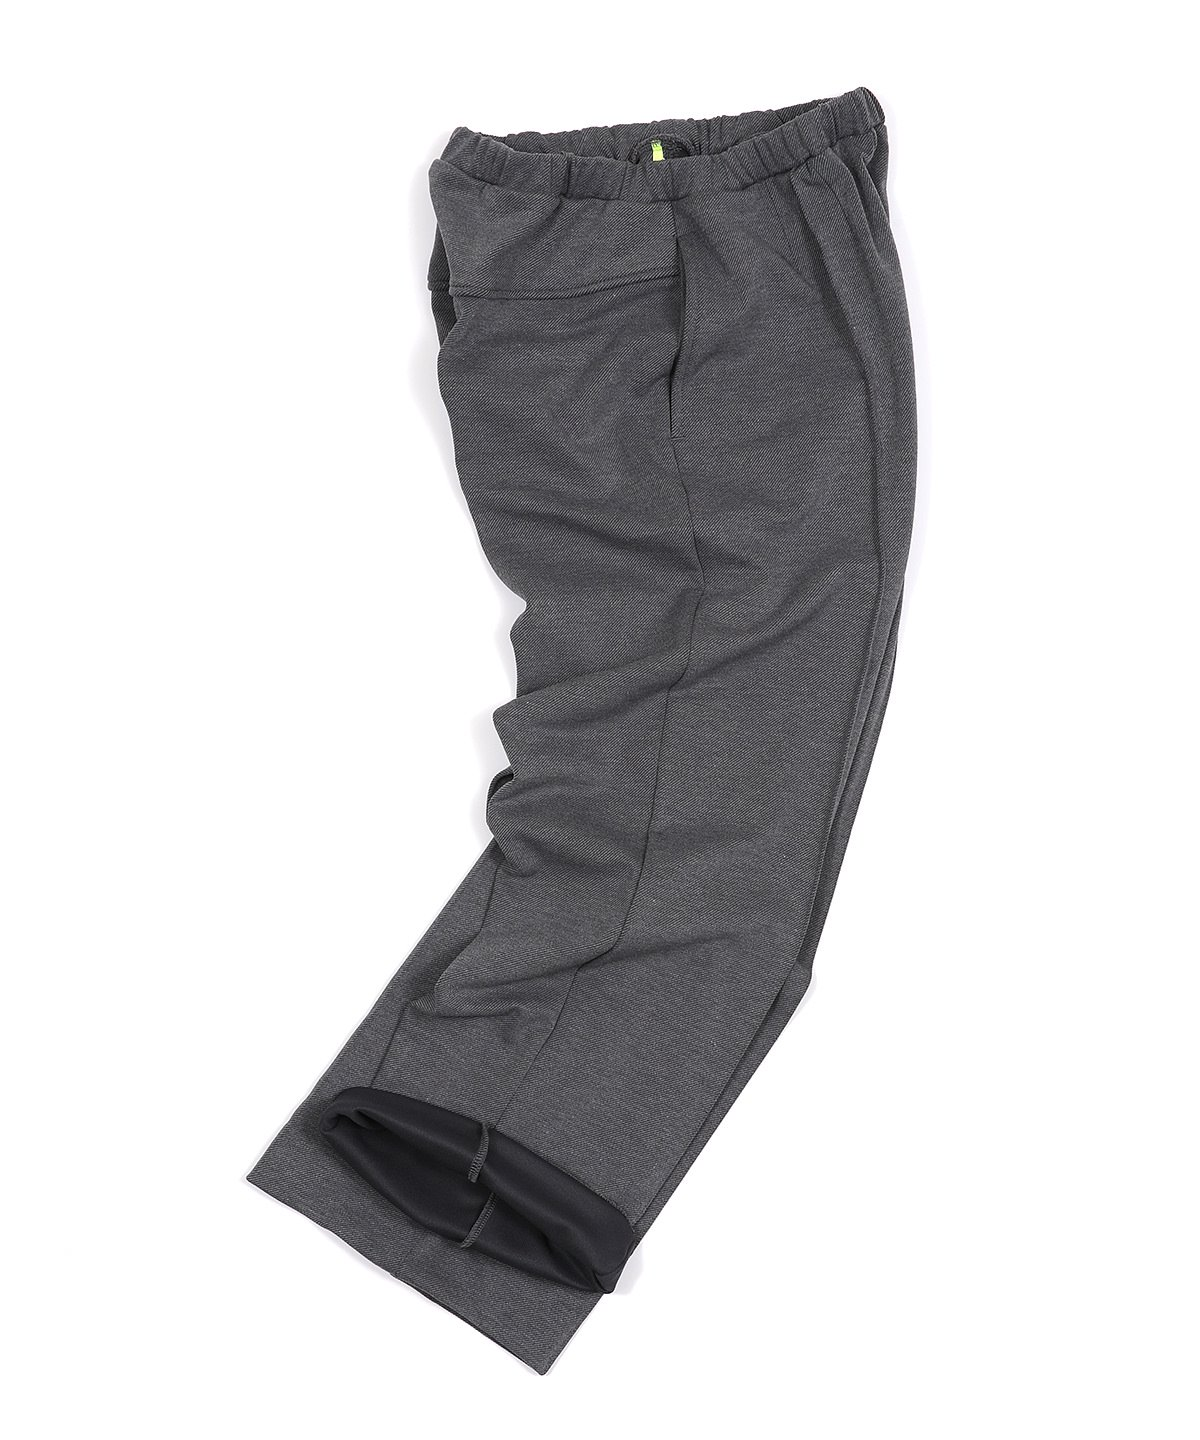 FRENCH JERSEY TROUSER